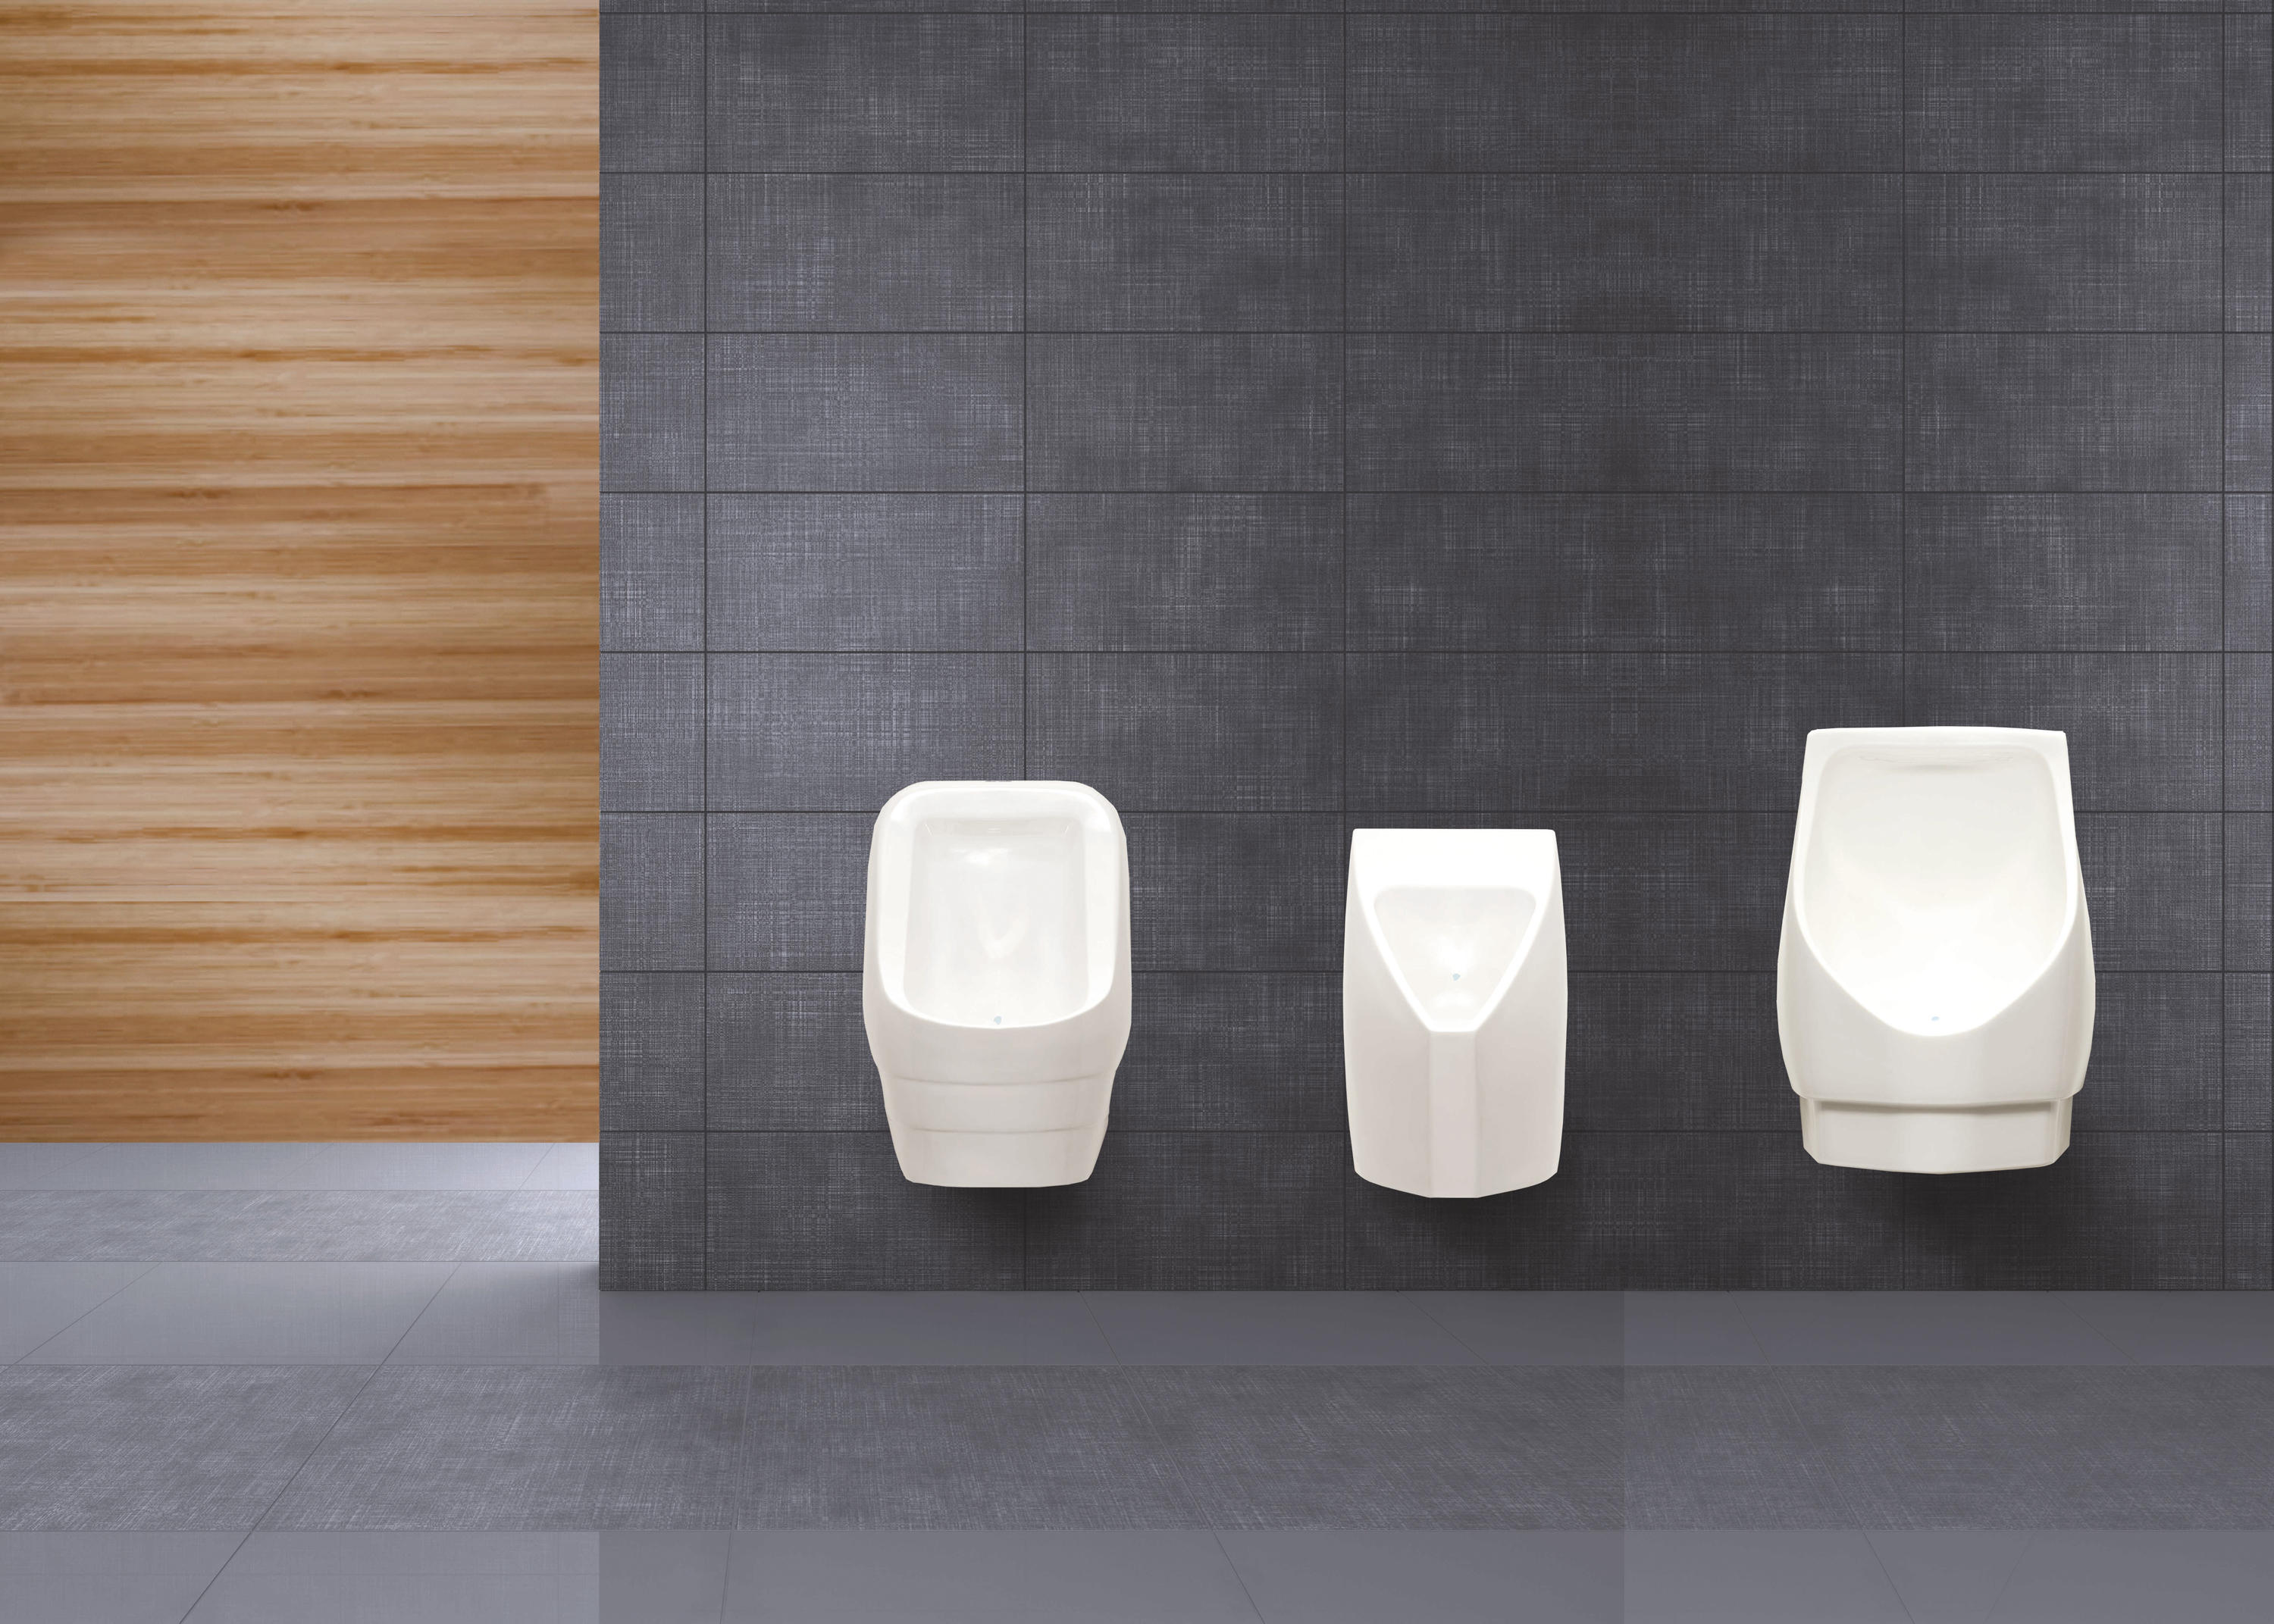 Hybrid Urinals Hyb 1000 Urinals From Sloan Architonic